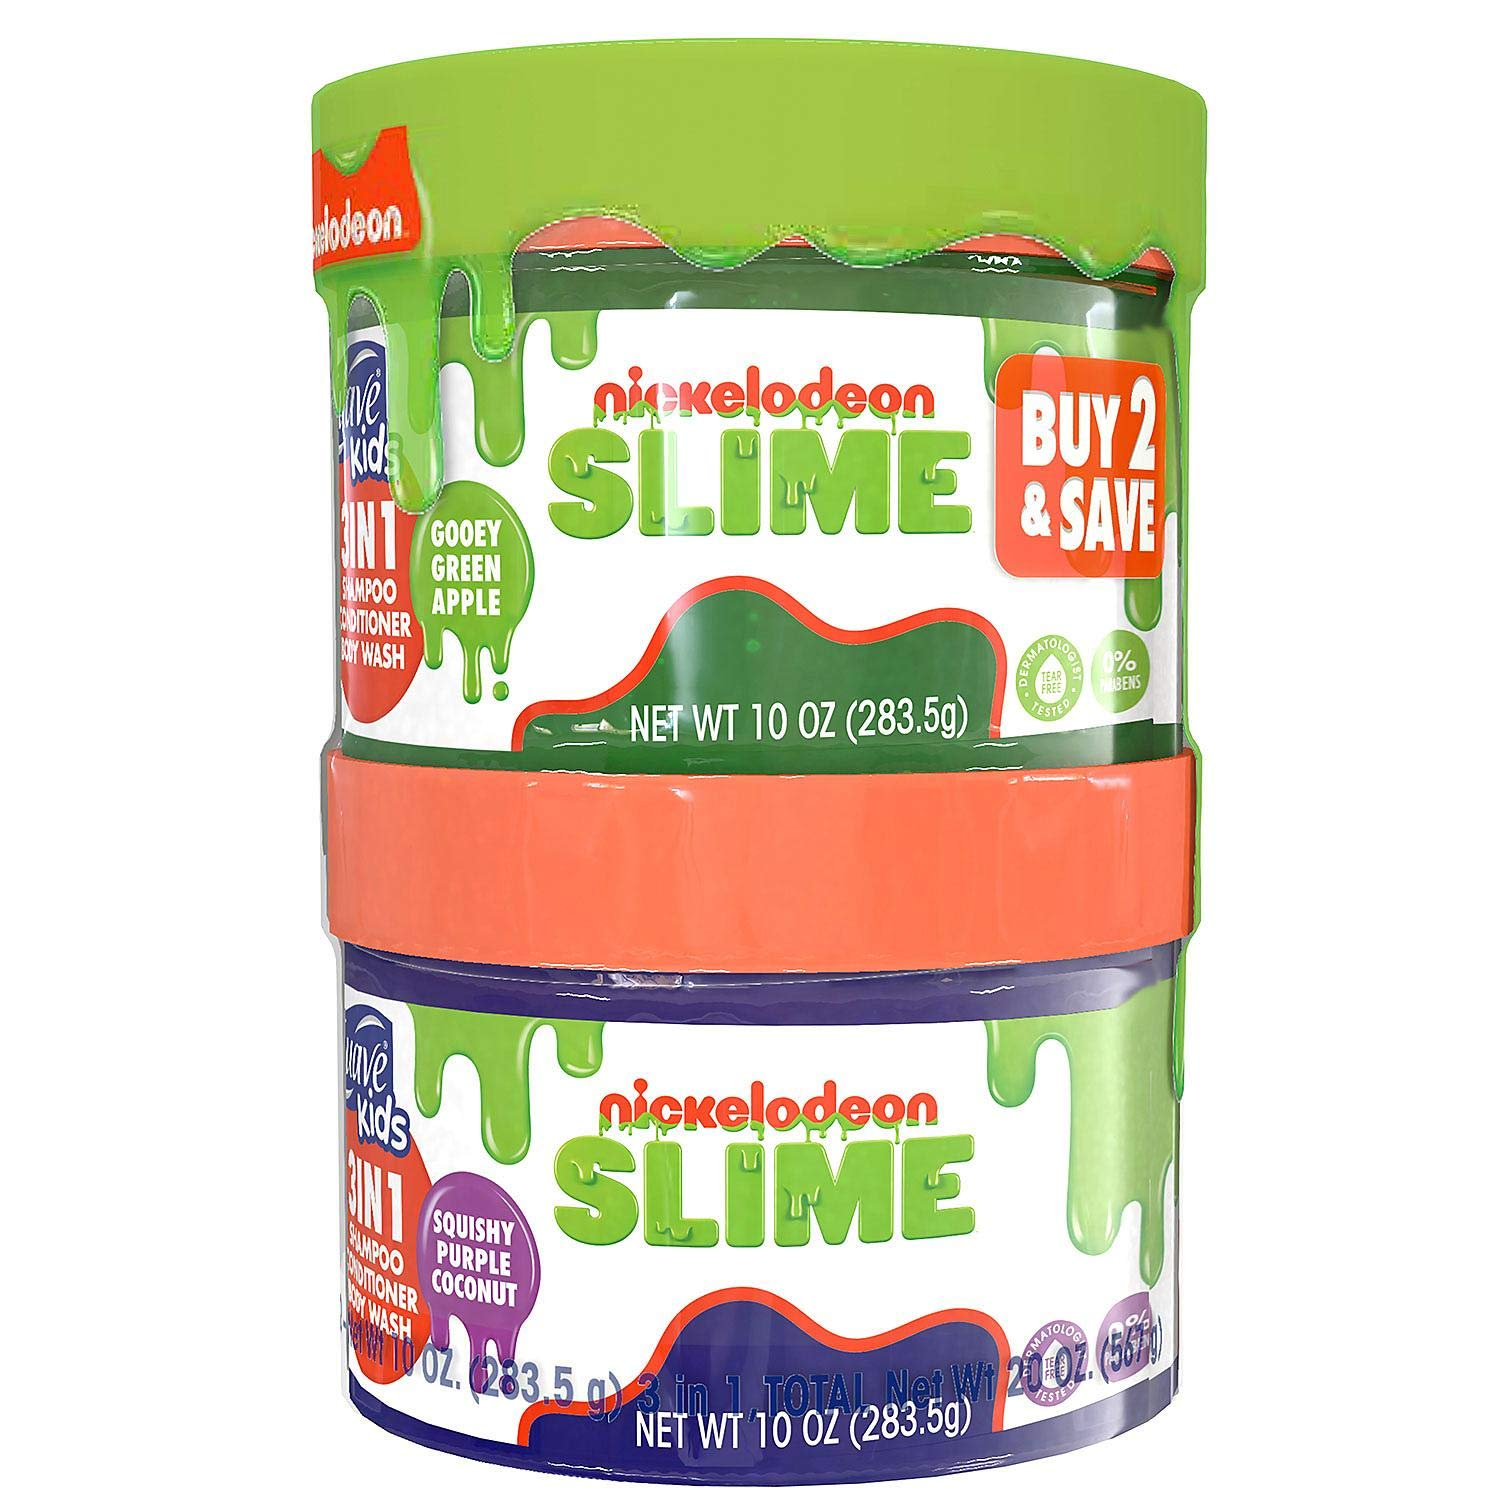 Suave Kids 3 Superior in 1 Shampoo Popular brand in the world and Wash Conditioner Nickelodeon Body